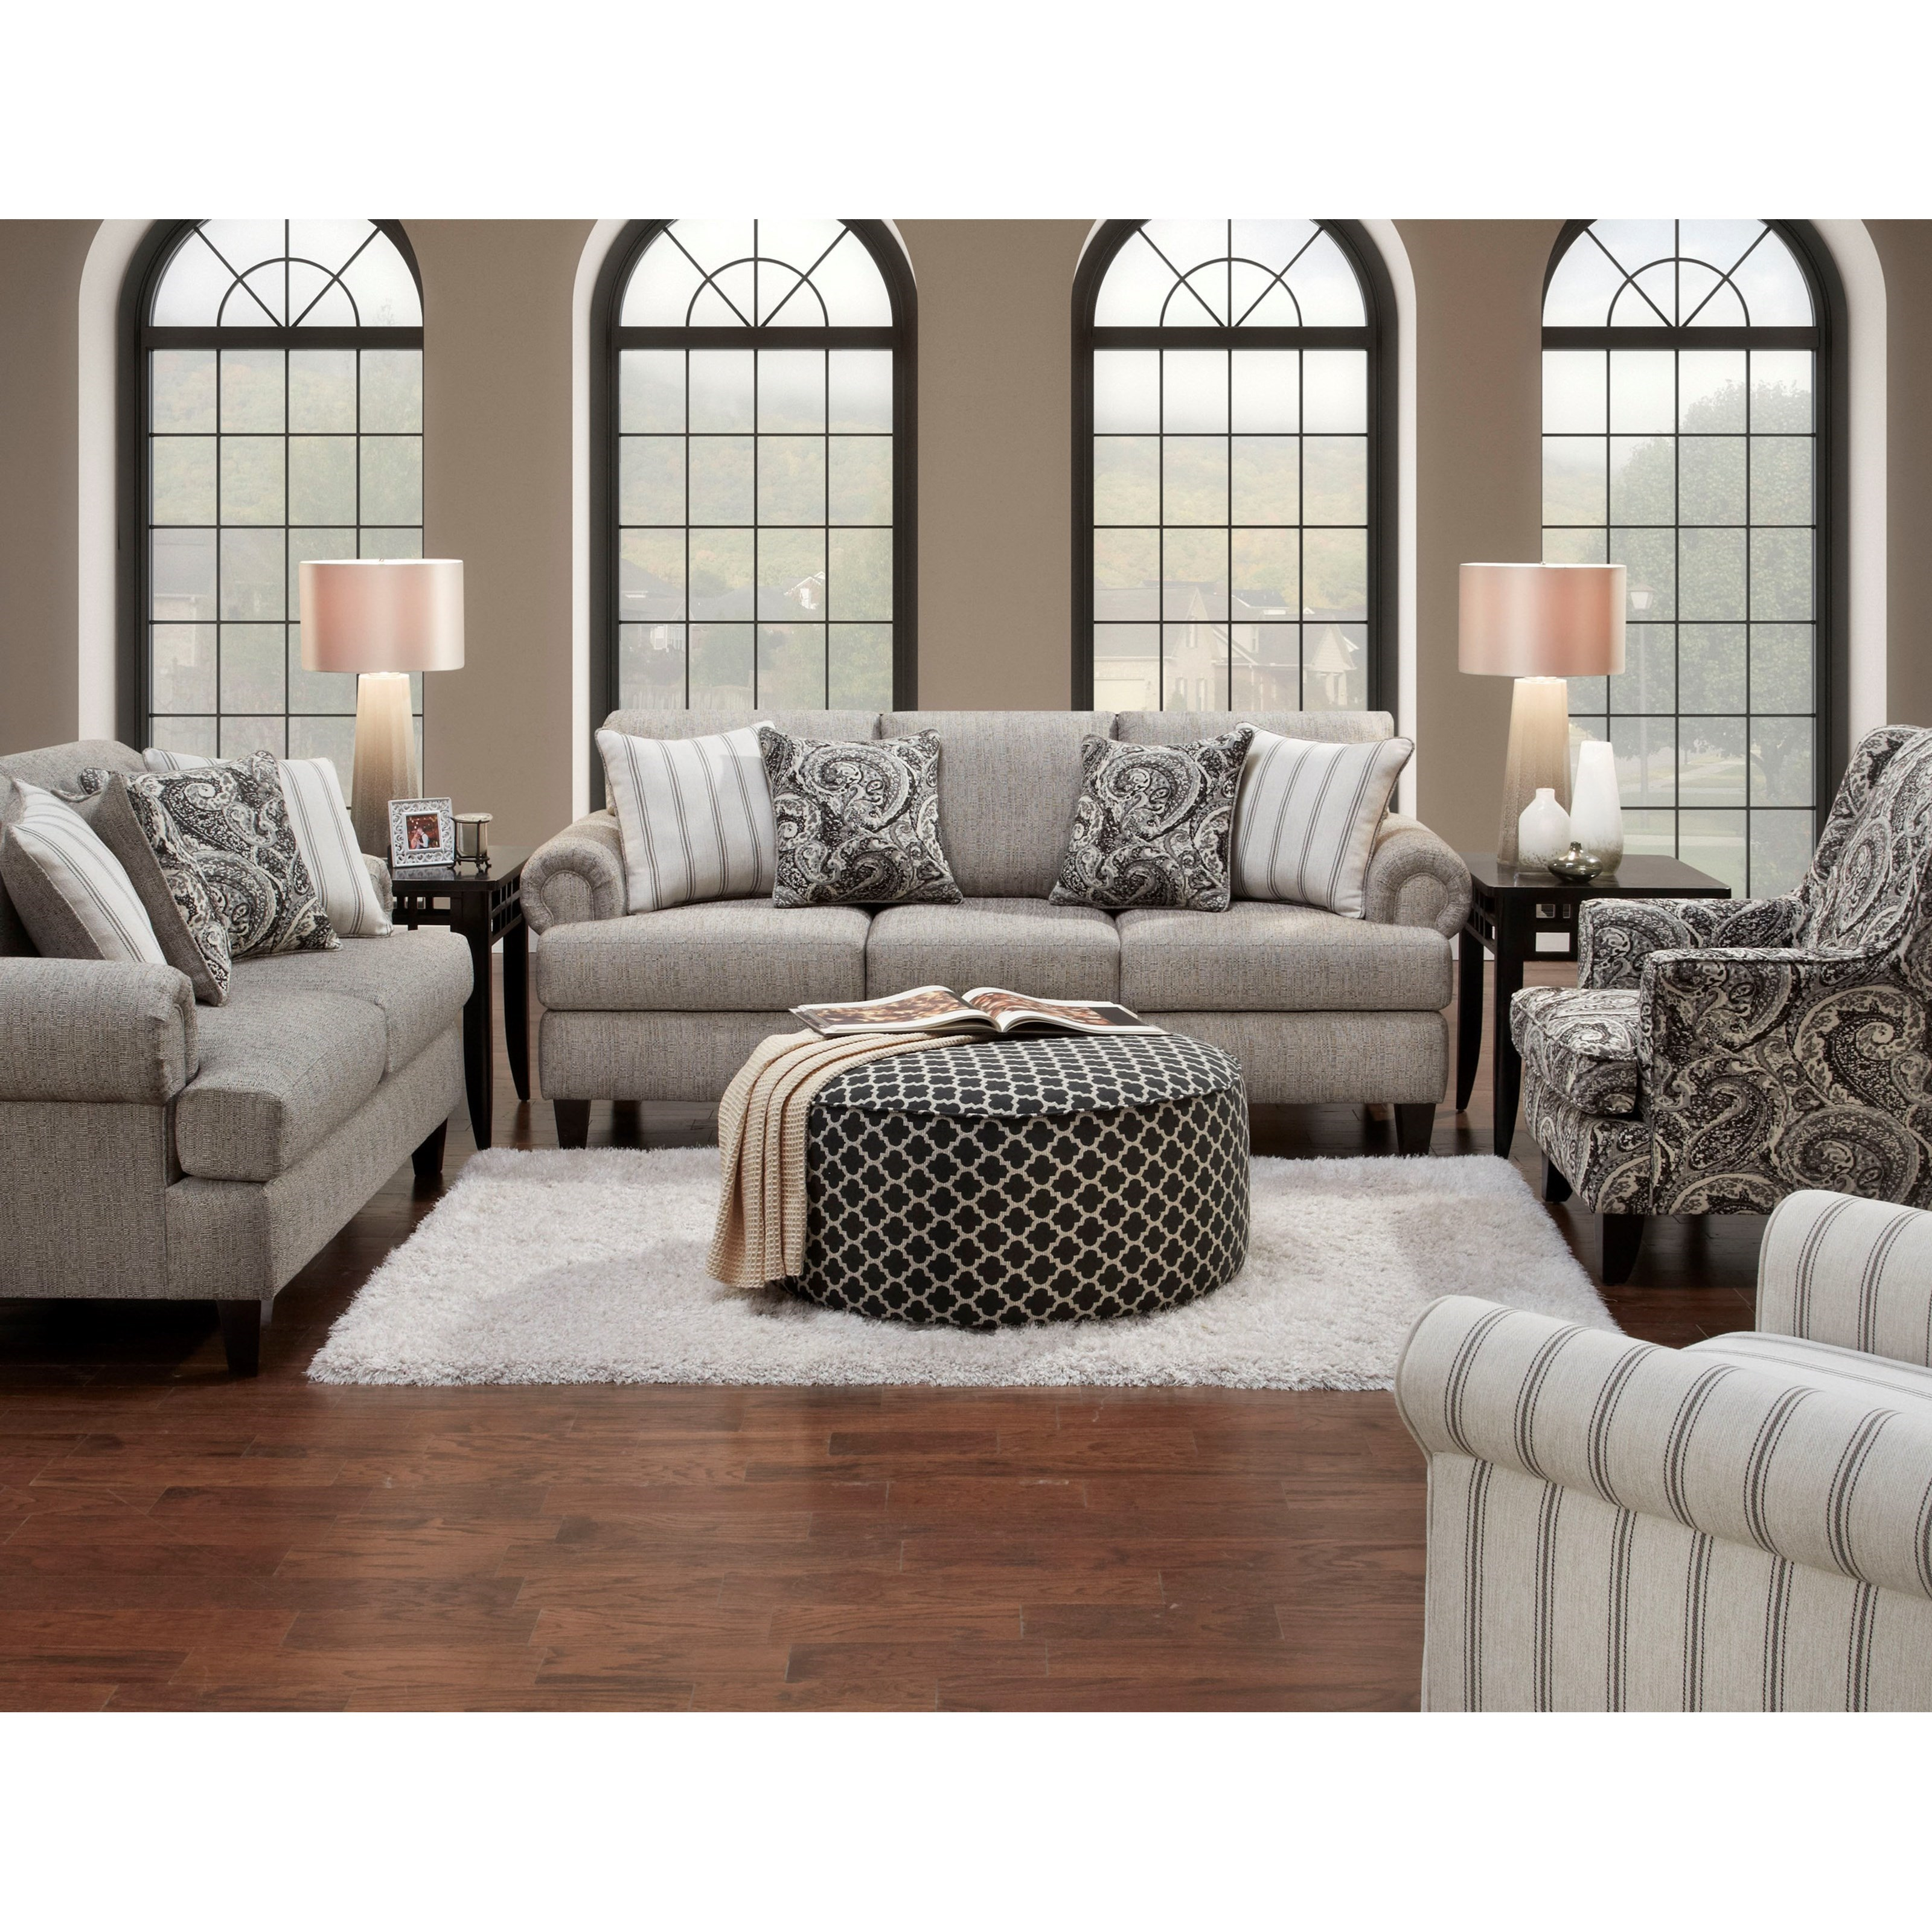 Fusion Furniture 2790 Stationary Living Room Group